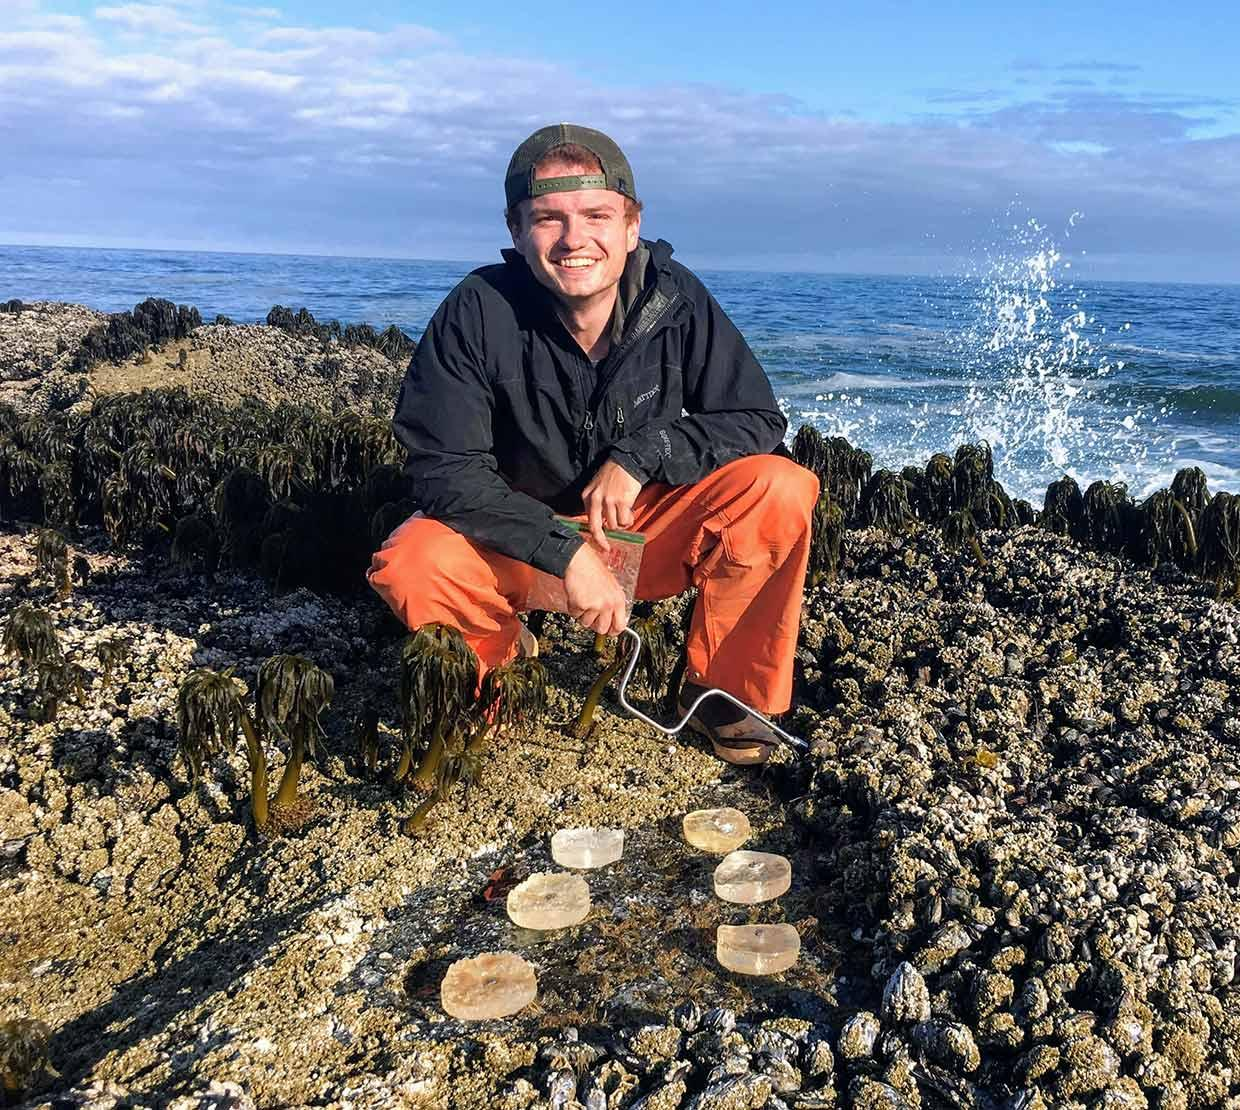 Kristofer Bauer standing on rocks on ocean shore with research equipment